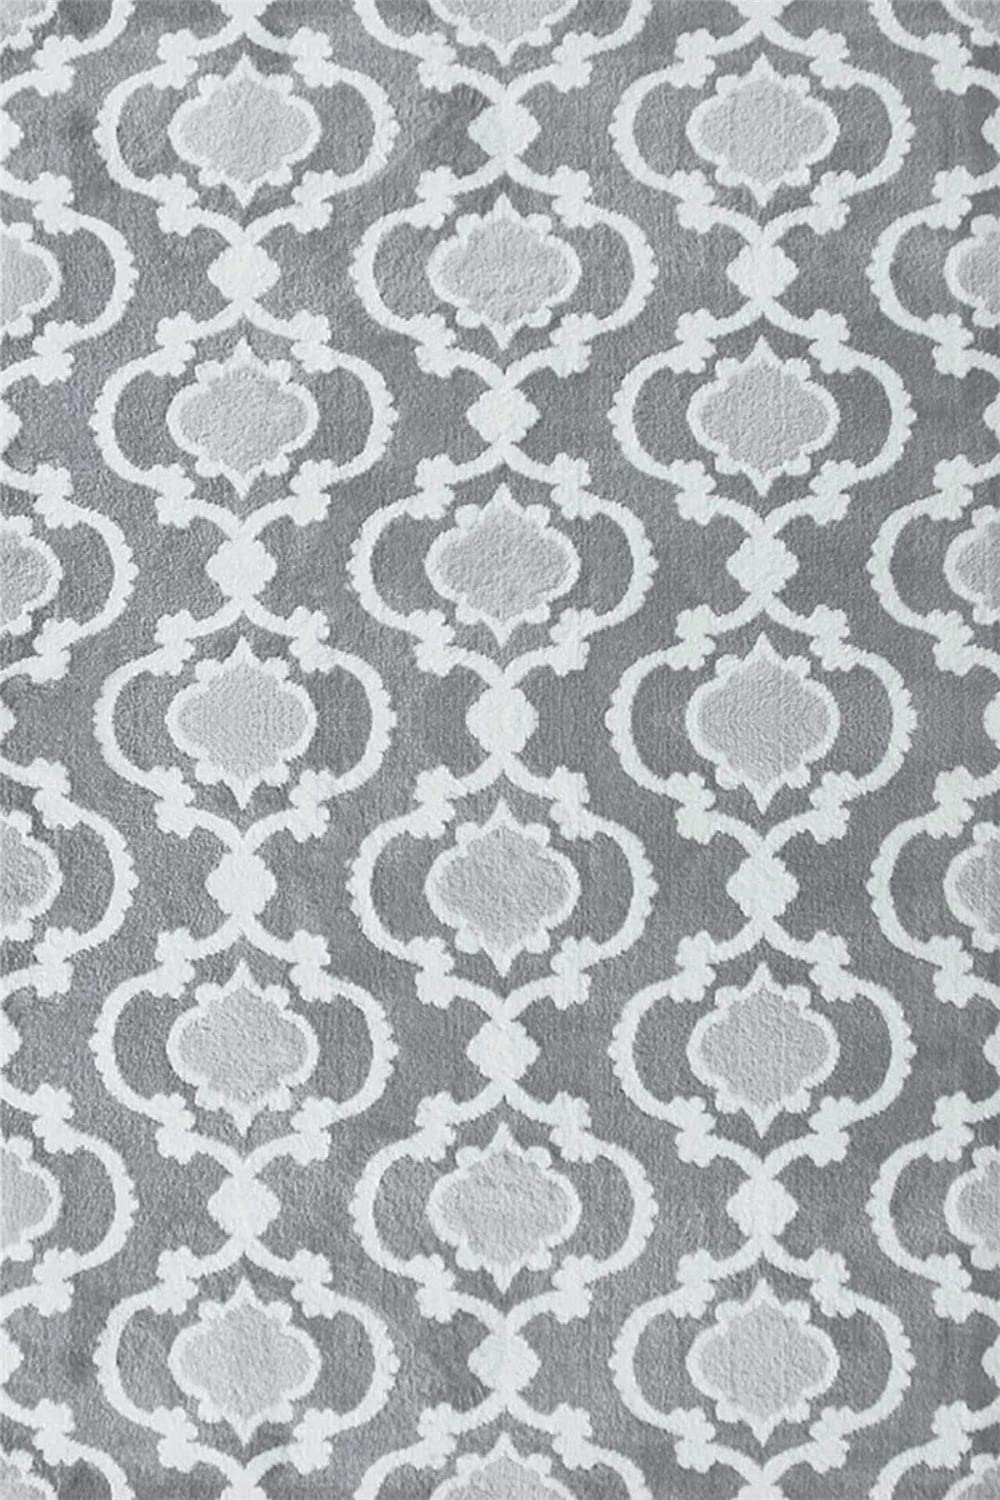 A2Z Rug Geometric Style Grey Trendy 7926 Area Rugs 80x150 cm - 2'6 x5' ft Turkey